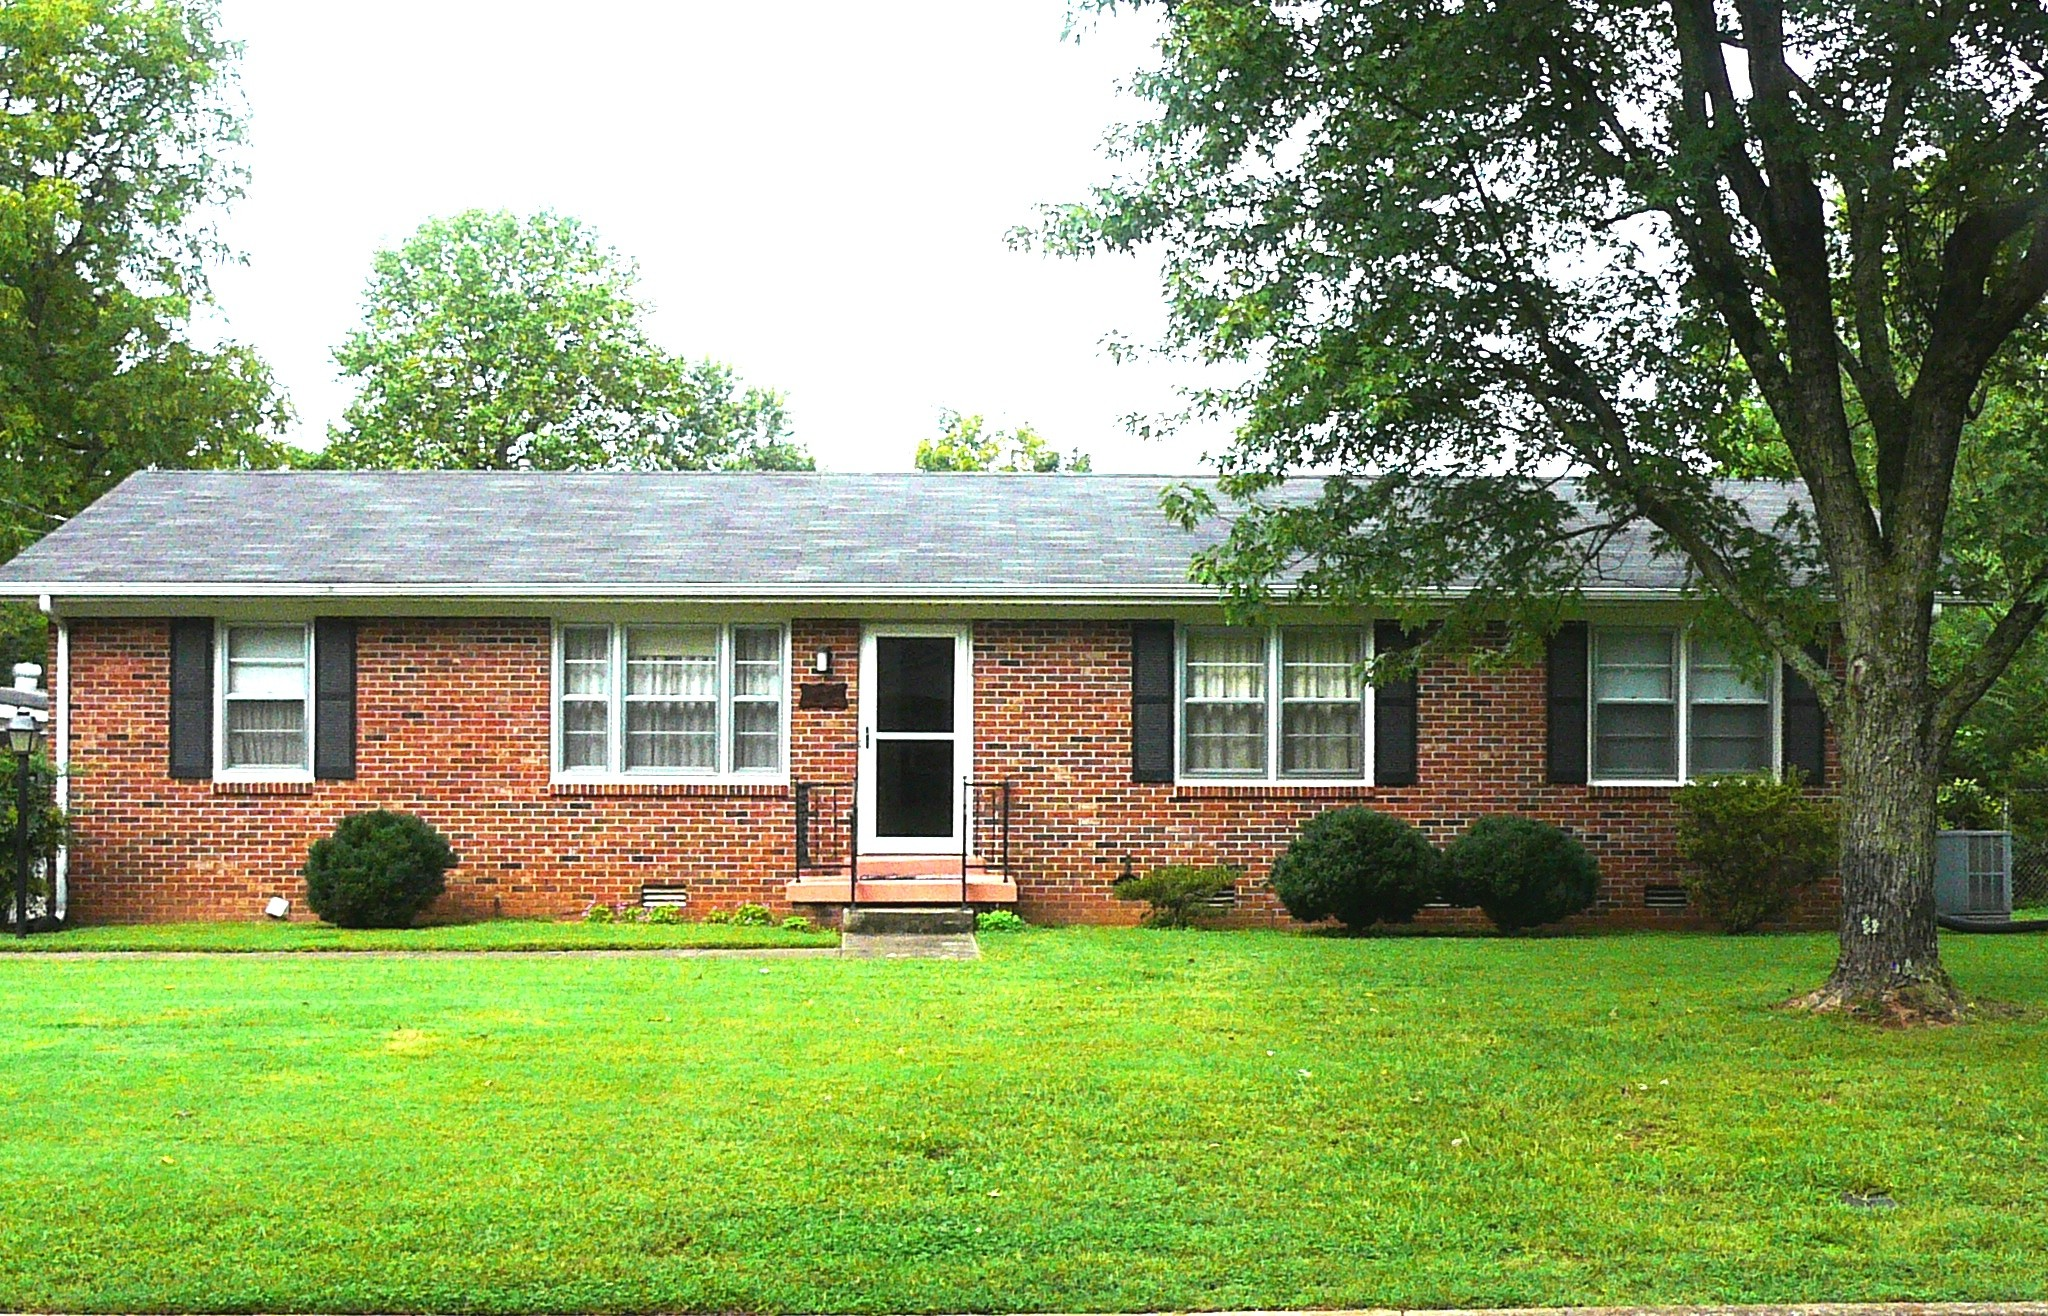 """926 Temple Ct, Murfreesboro, TN is a single family home 2,271 sq ft.  3 Bedroom & 2 bathrooms. Big yard, Rocking Chair Back Porch, Workshop/Shed and Hot Tub.  Extra Room .  Phone in workshop/heat/cool.  Carport and Fenced In Yard. Close to MTSU, Shopping, Restaurants and Downtown.  Door Prize Drawings and other things at """"Open House"""" Saturday, 10/31."""